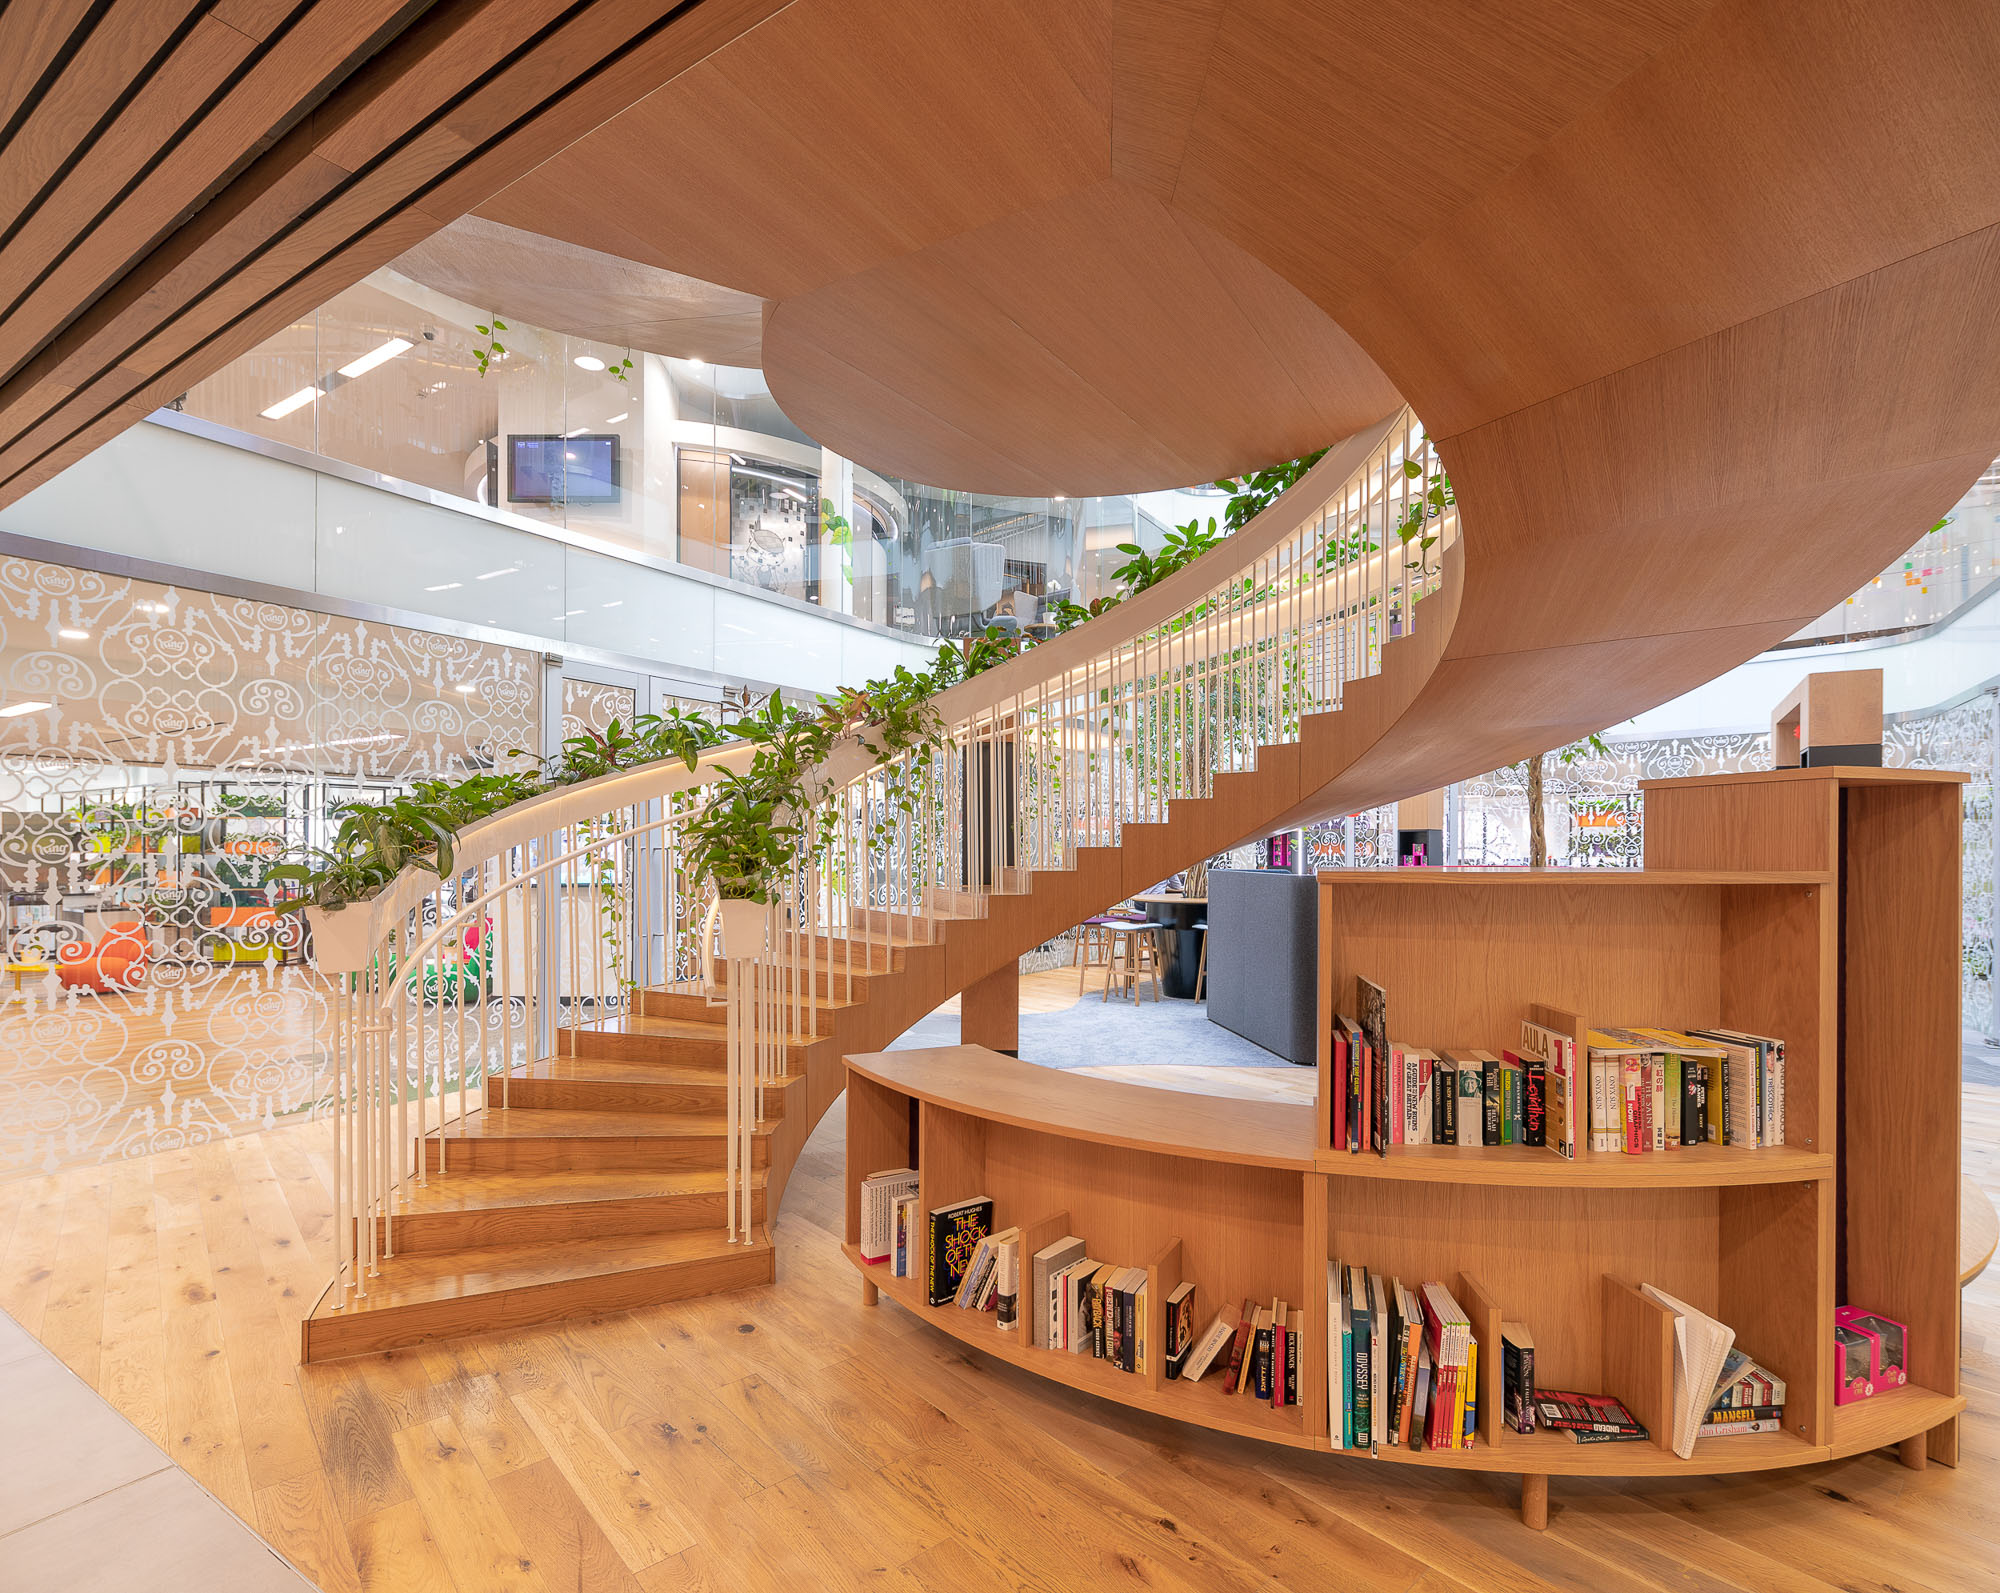 Architectural image of a wooden spiral staircase